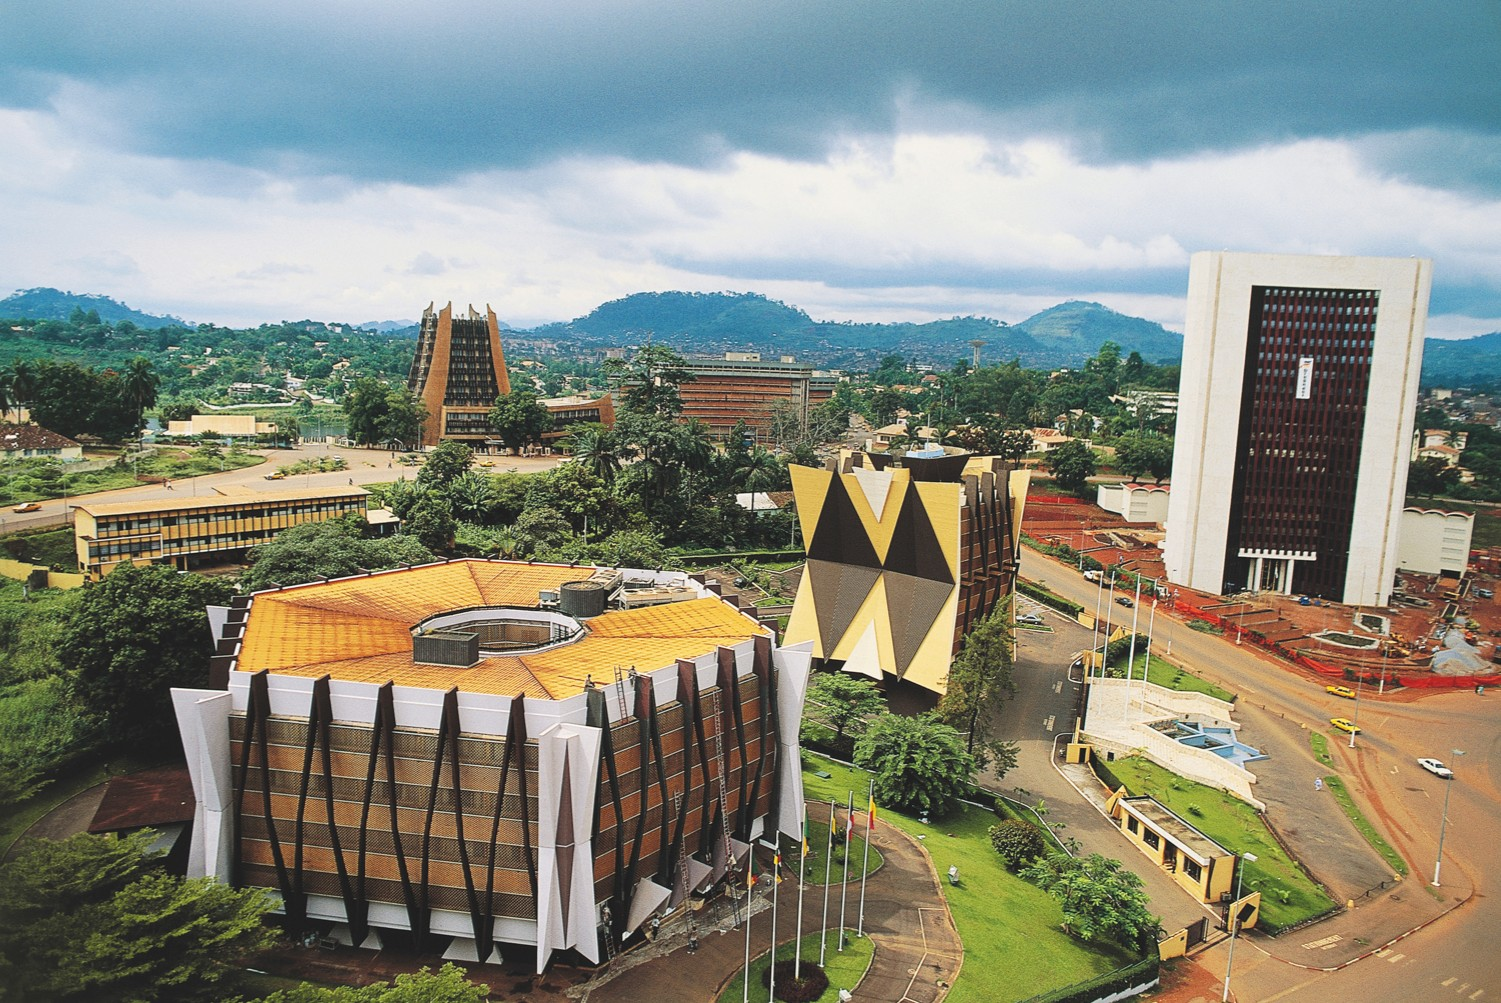 A view over Yaoundé, Cameroon